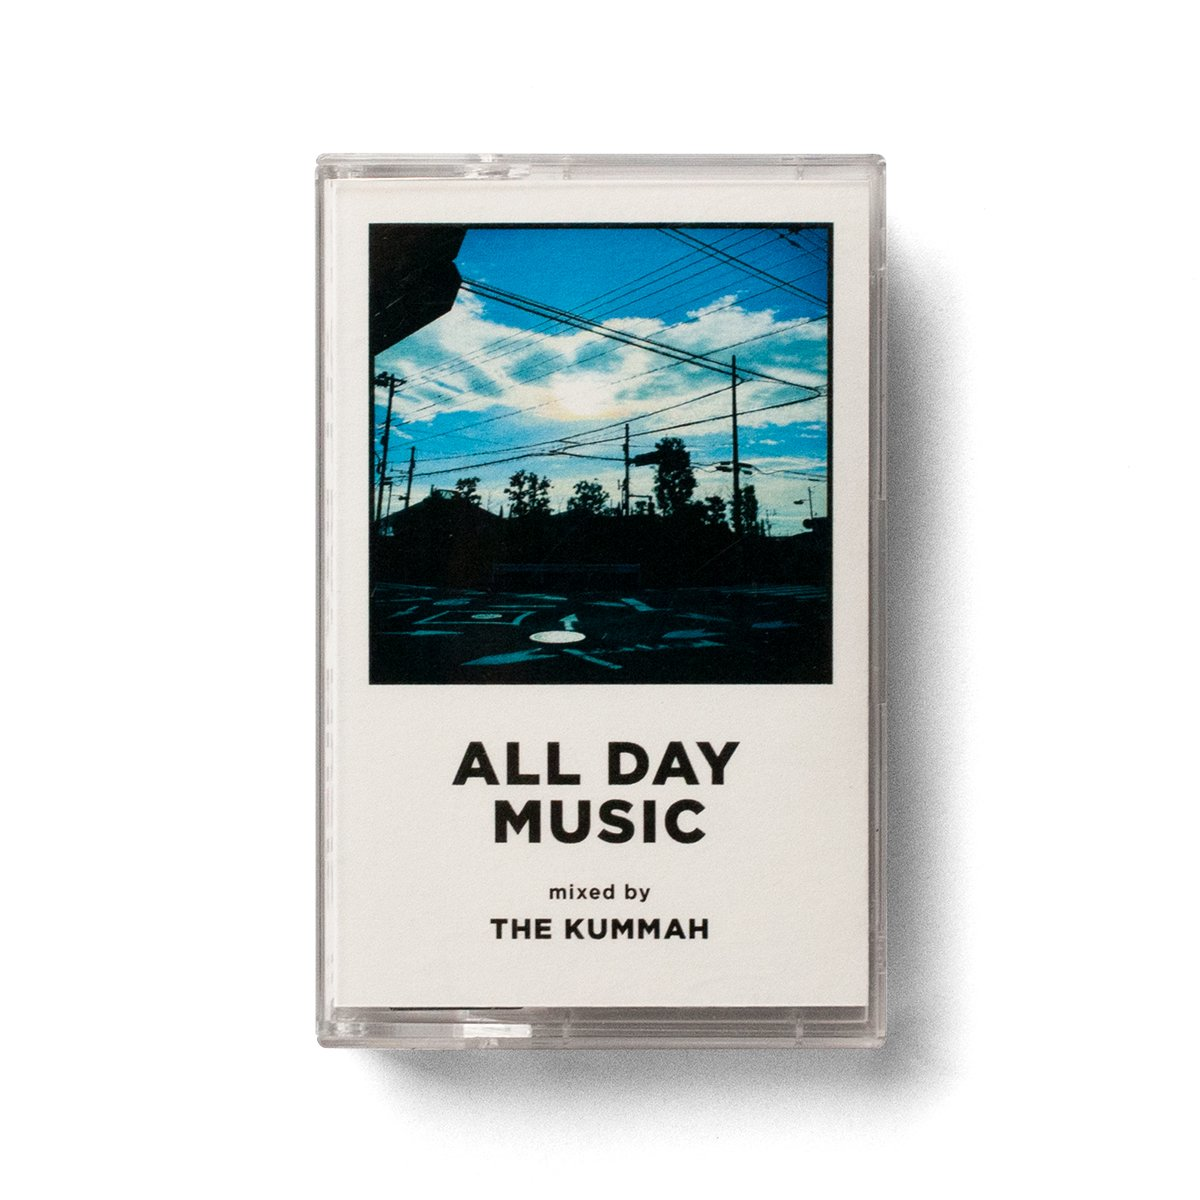 ALL DAY MUSIC #15 - Mixed by THE KUMMAH<img class='new_mark_img2' src='https://img.shop-pro.jp/img/new/icons5.gif' style='border:none;display:inline;margin:0px;padding:0px;width:auto;' />